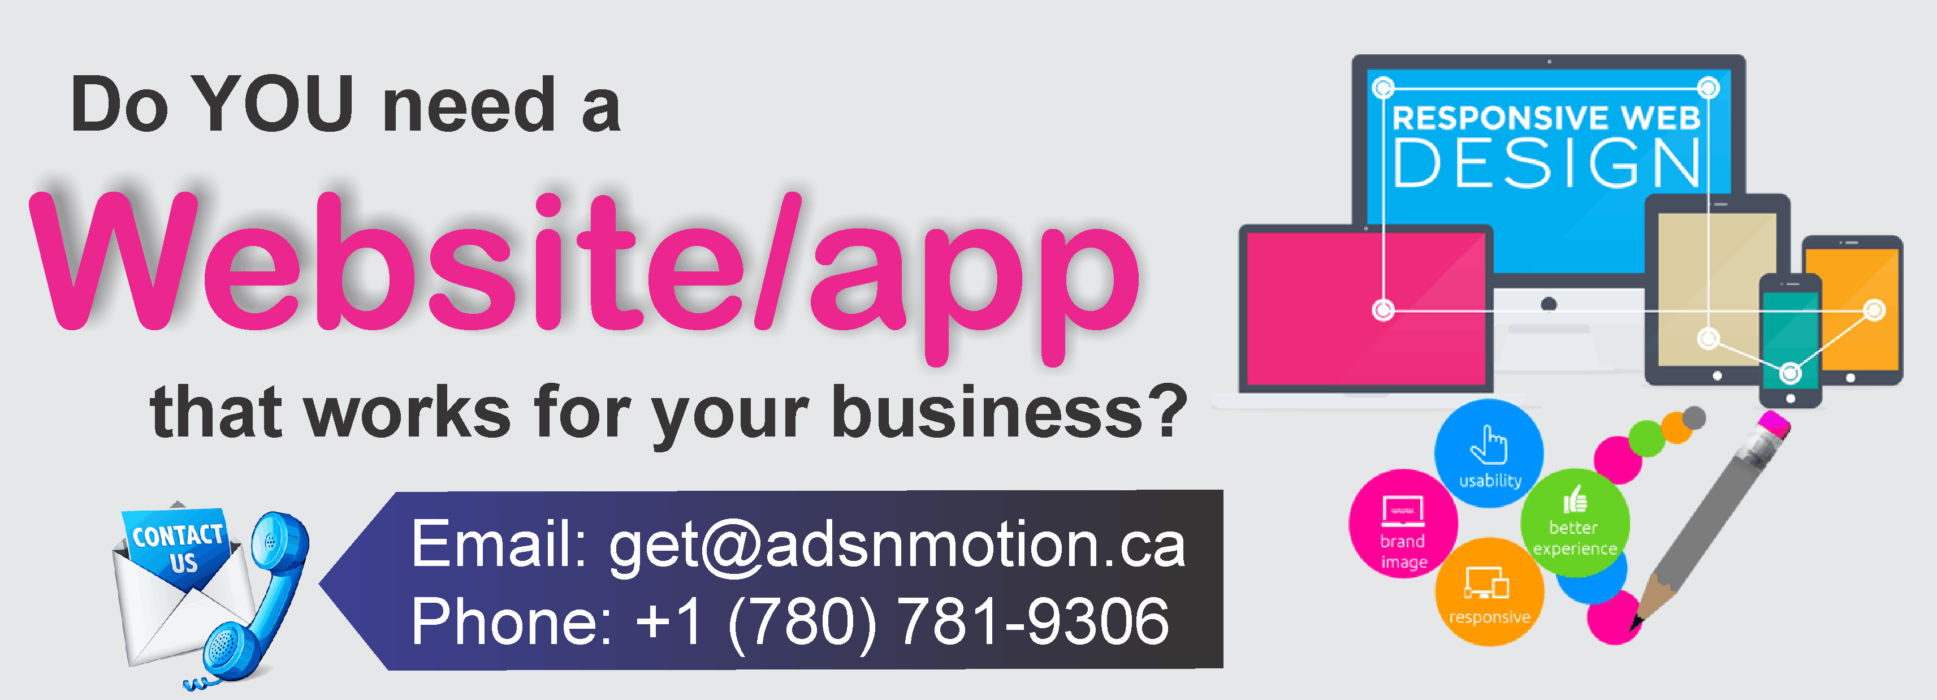 Professional Website and Mobile Application Development in Camrose, Alberta, Canada